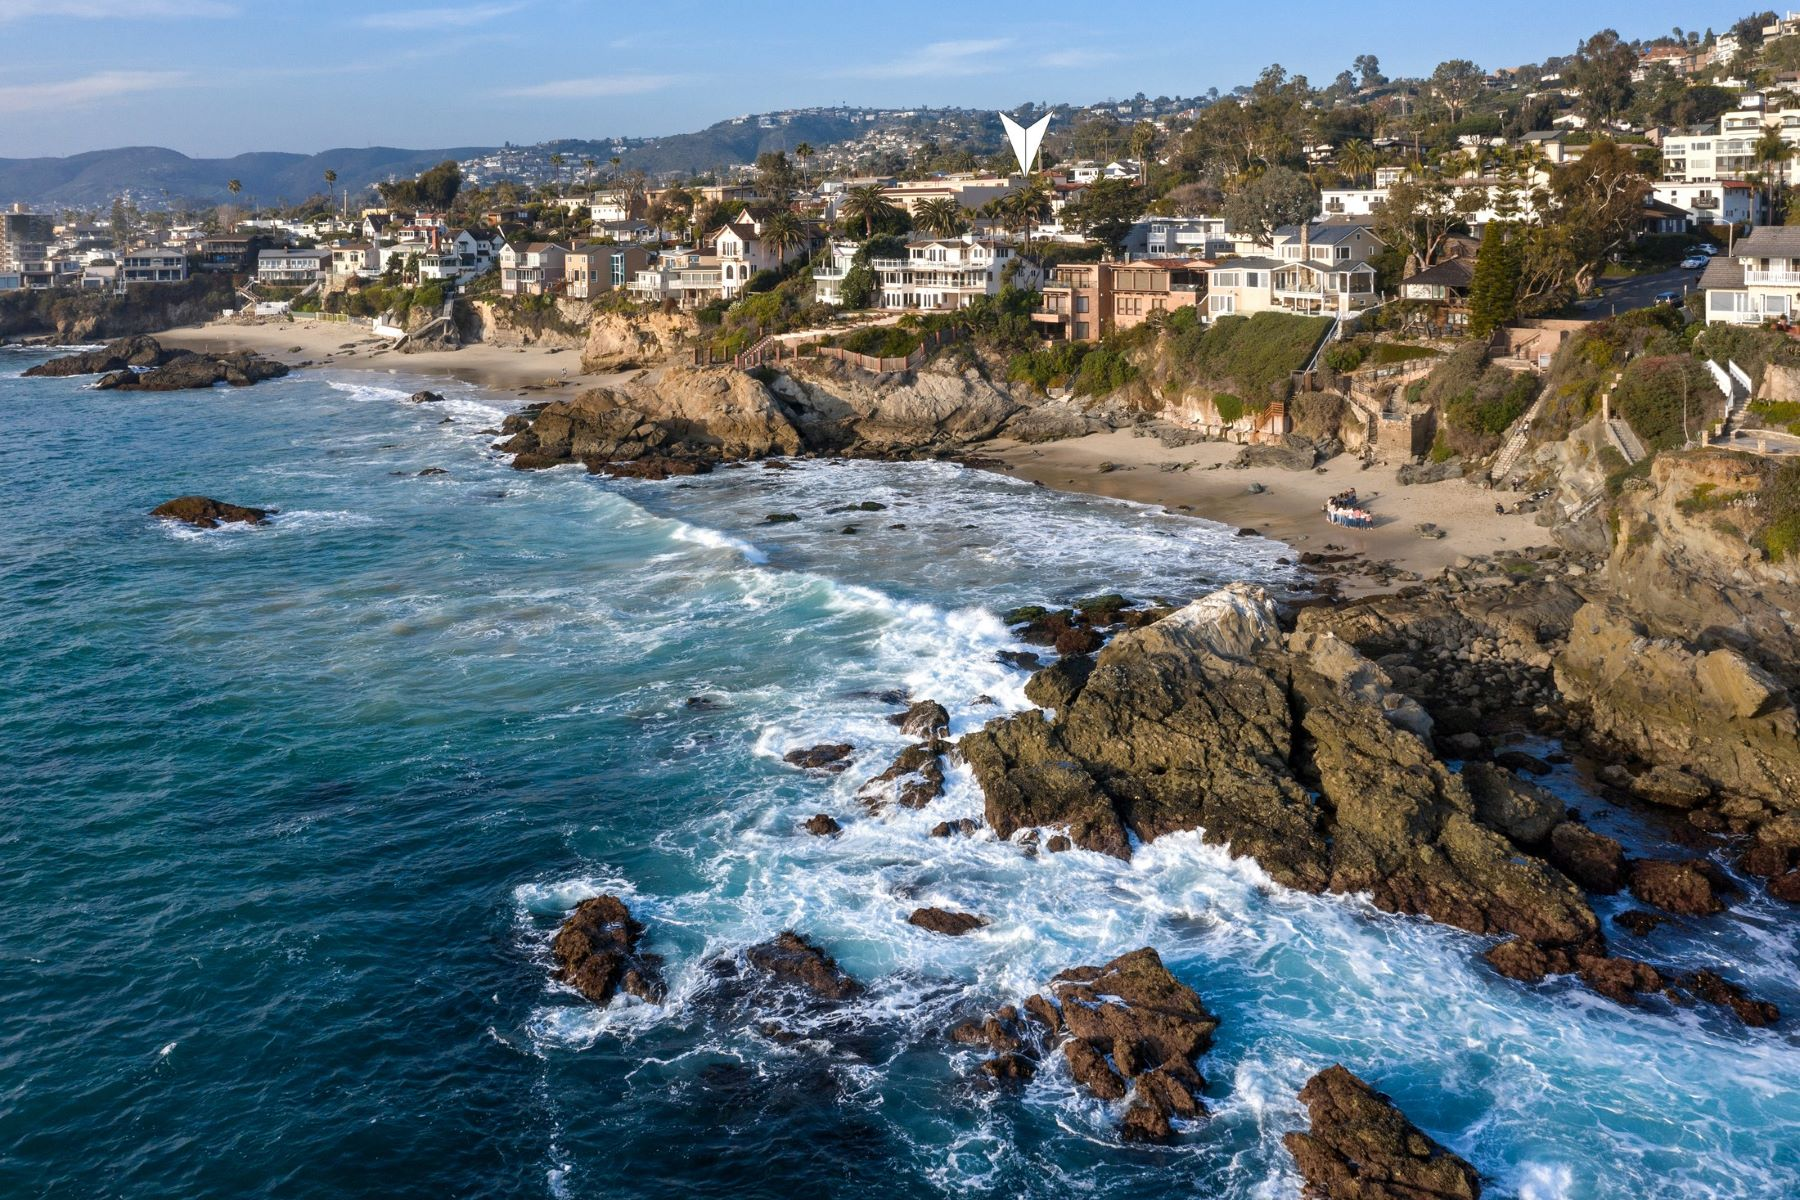 Single Family Homes for Sale at 271 Center Street, Laguna Beach 271 Center Street Laguna Beach, California 92651 United States